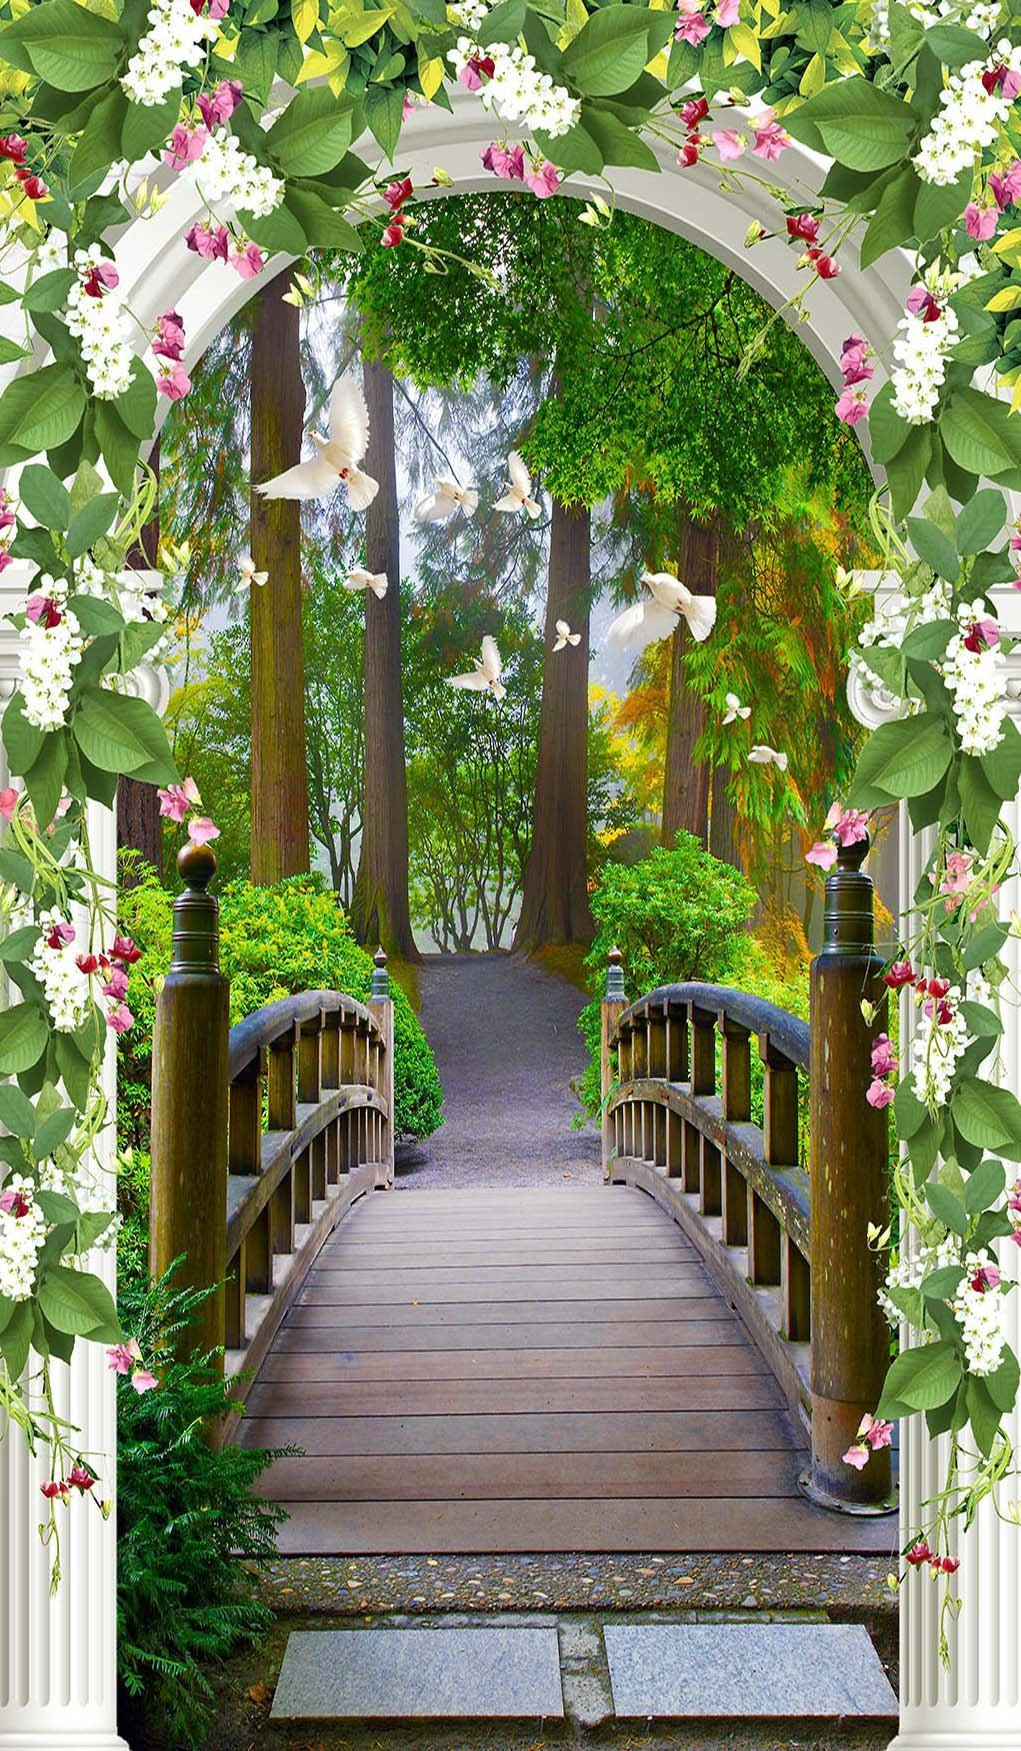 3D arch covered with flowers door mural Wallpaper AJ Wallpaper